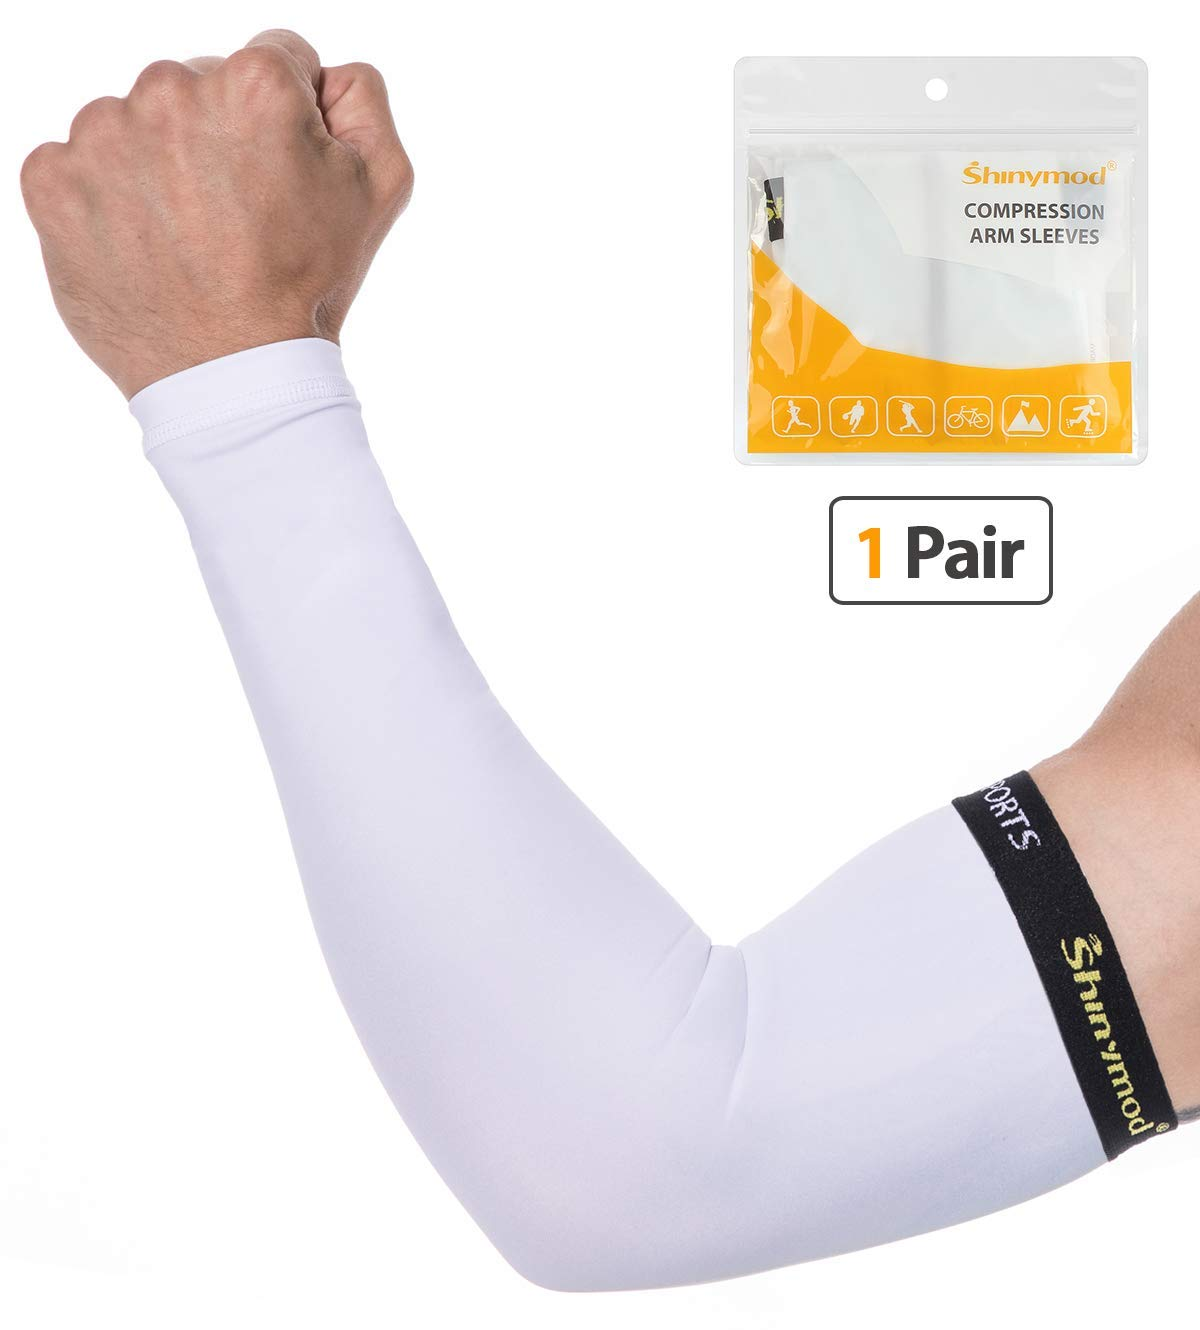 Black Sun Protection Arm Cooling Sleeve Warmers Cuffs UV Protection Sleeves WU